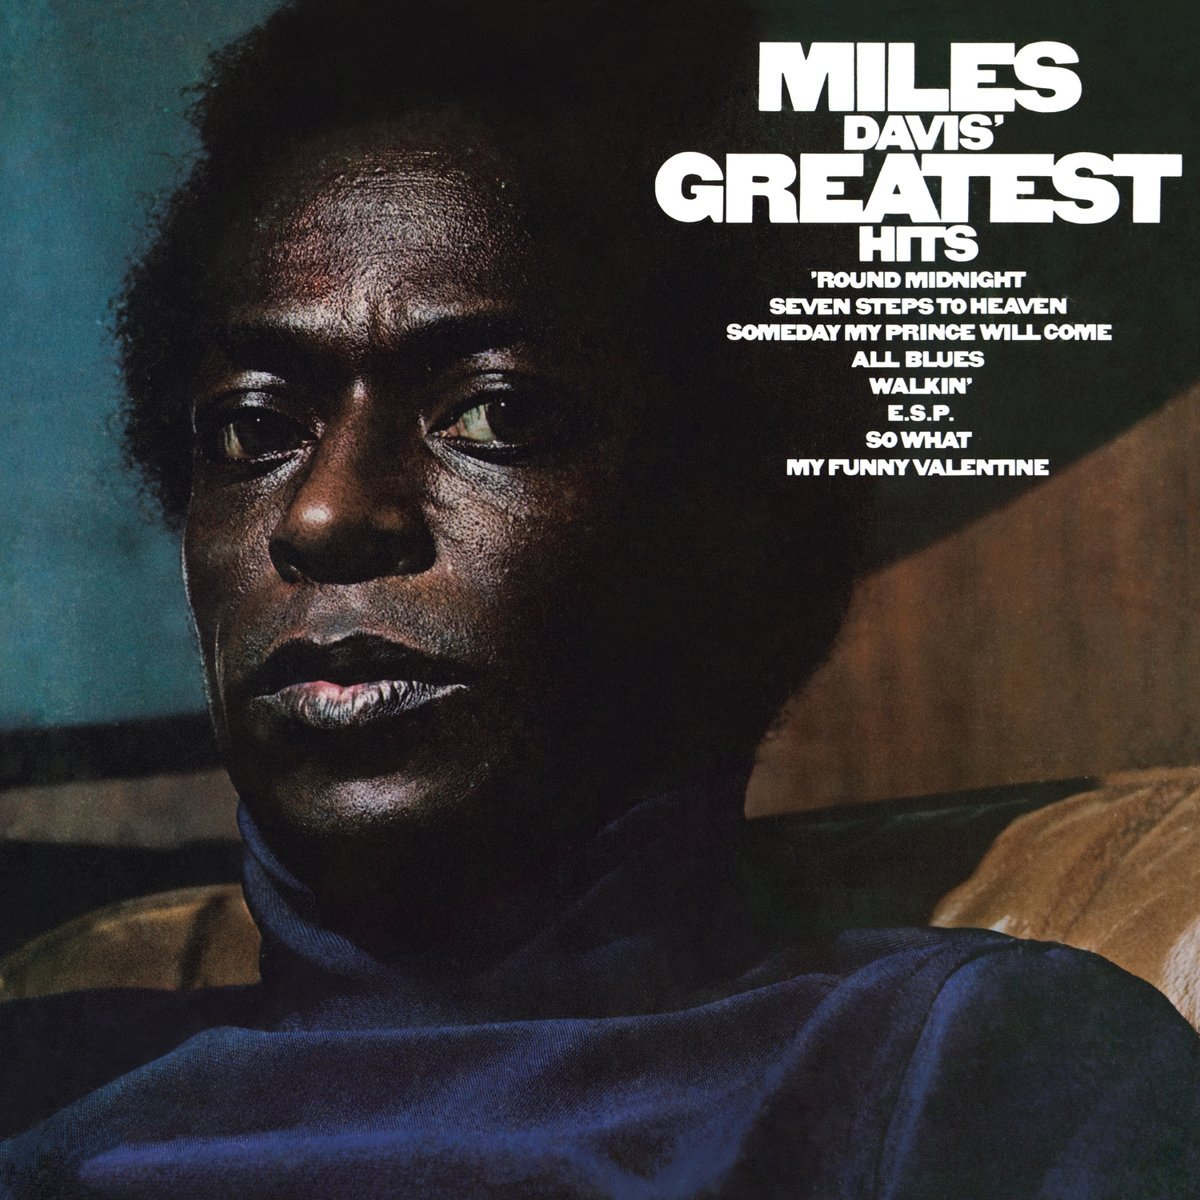 Miles Davis' Greatest Hits - Vinyl